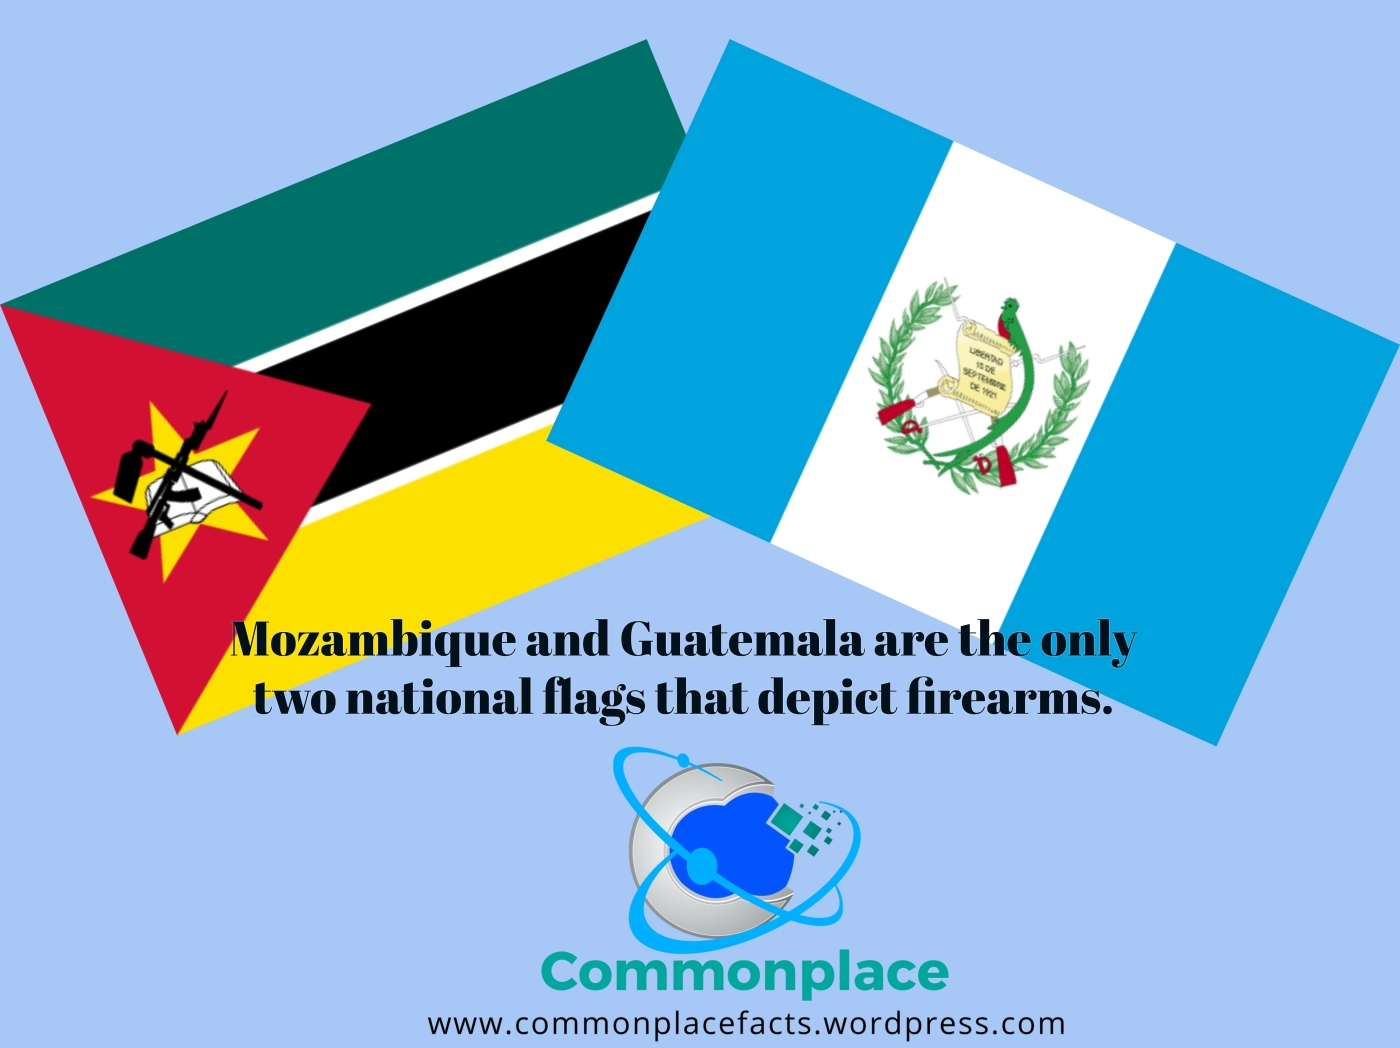 #Mozambique #Guatemala #firearms #flags #funfacts